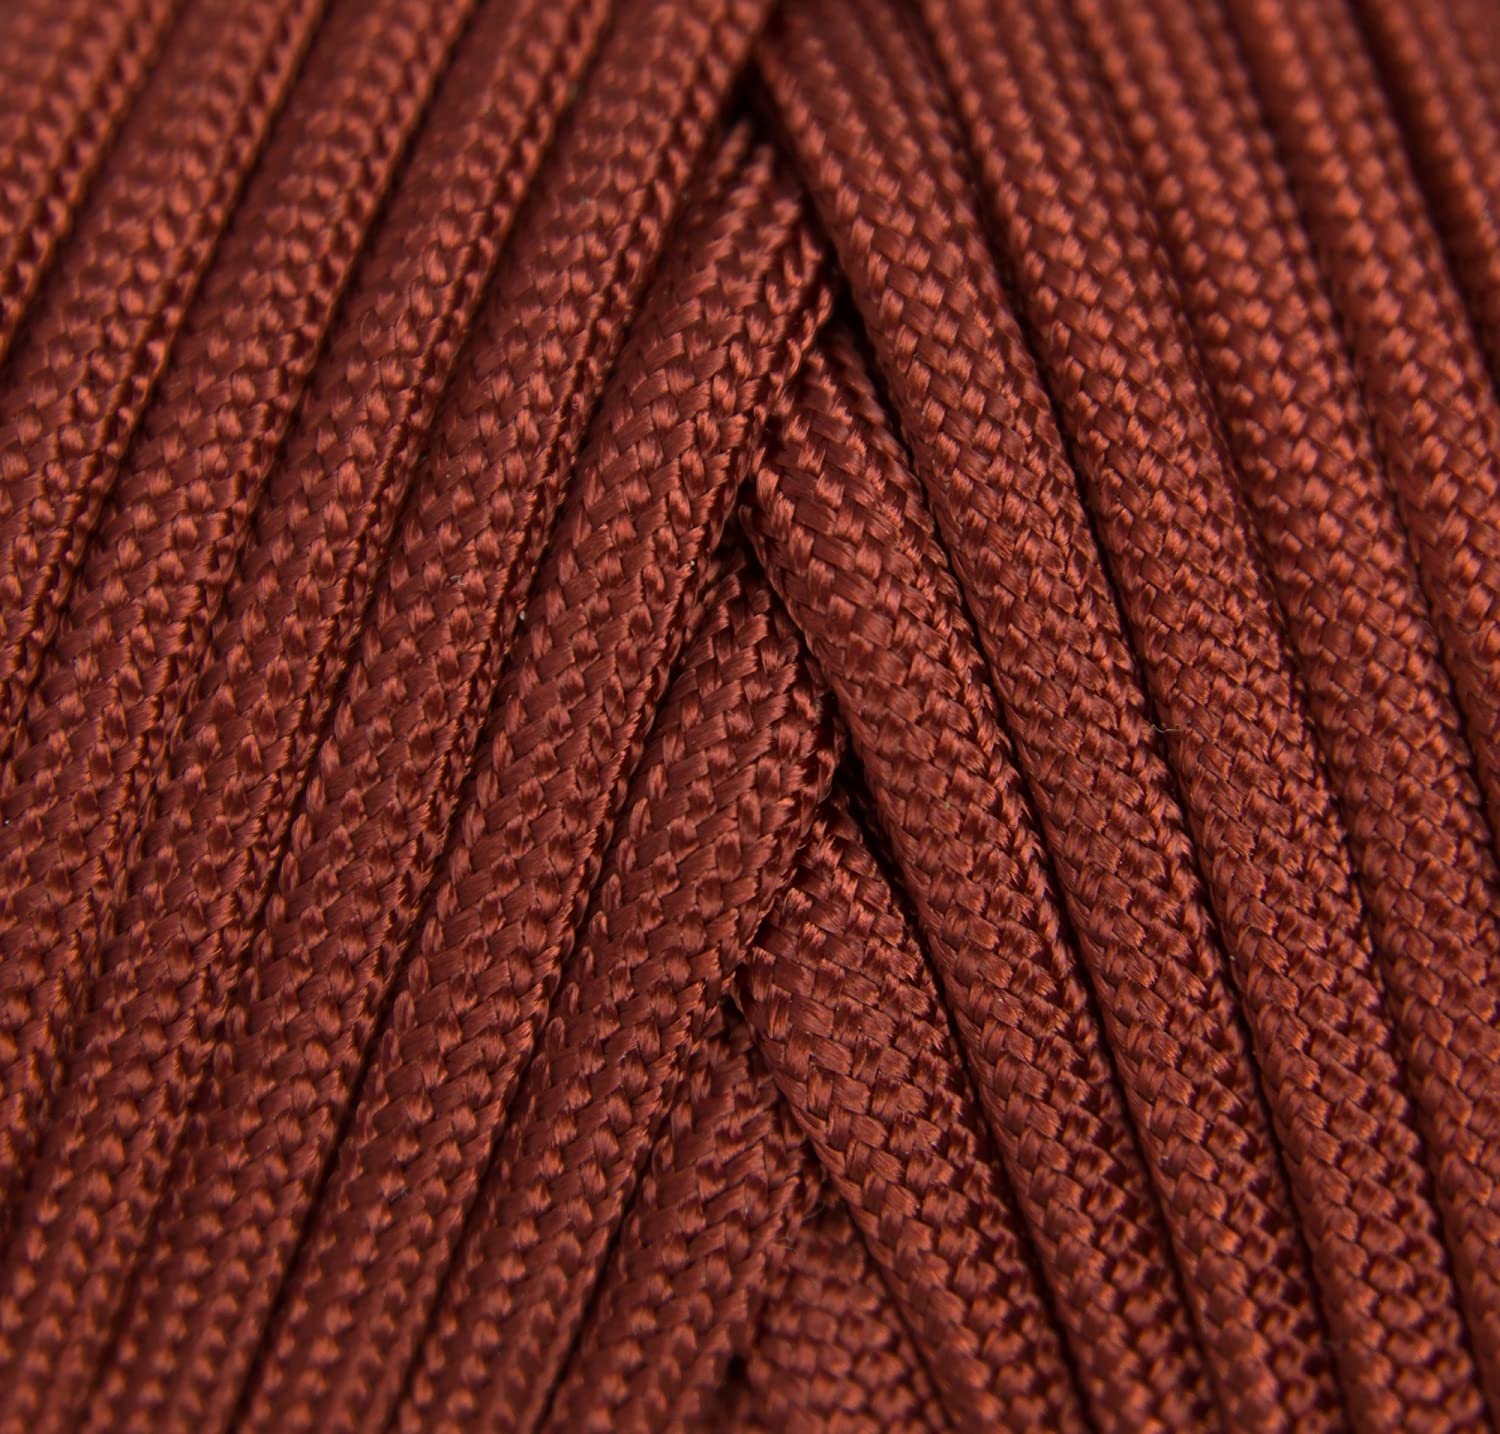 MIL-C-5040-H TOUGH-GRID 550lb Paracord//Parachute Cord - Made in The USA 100Ft. 100/% Nylon Genuine Mil-Spec Type III Paracord Used by The US Military -